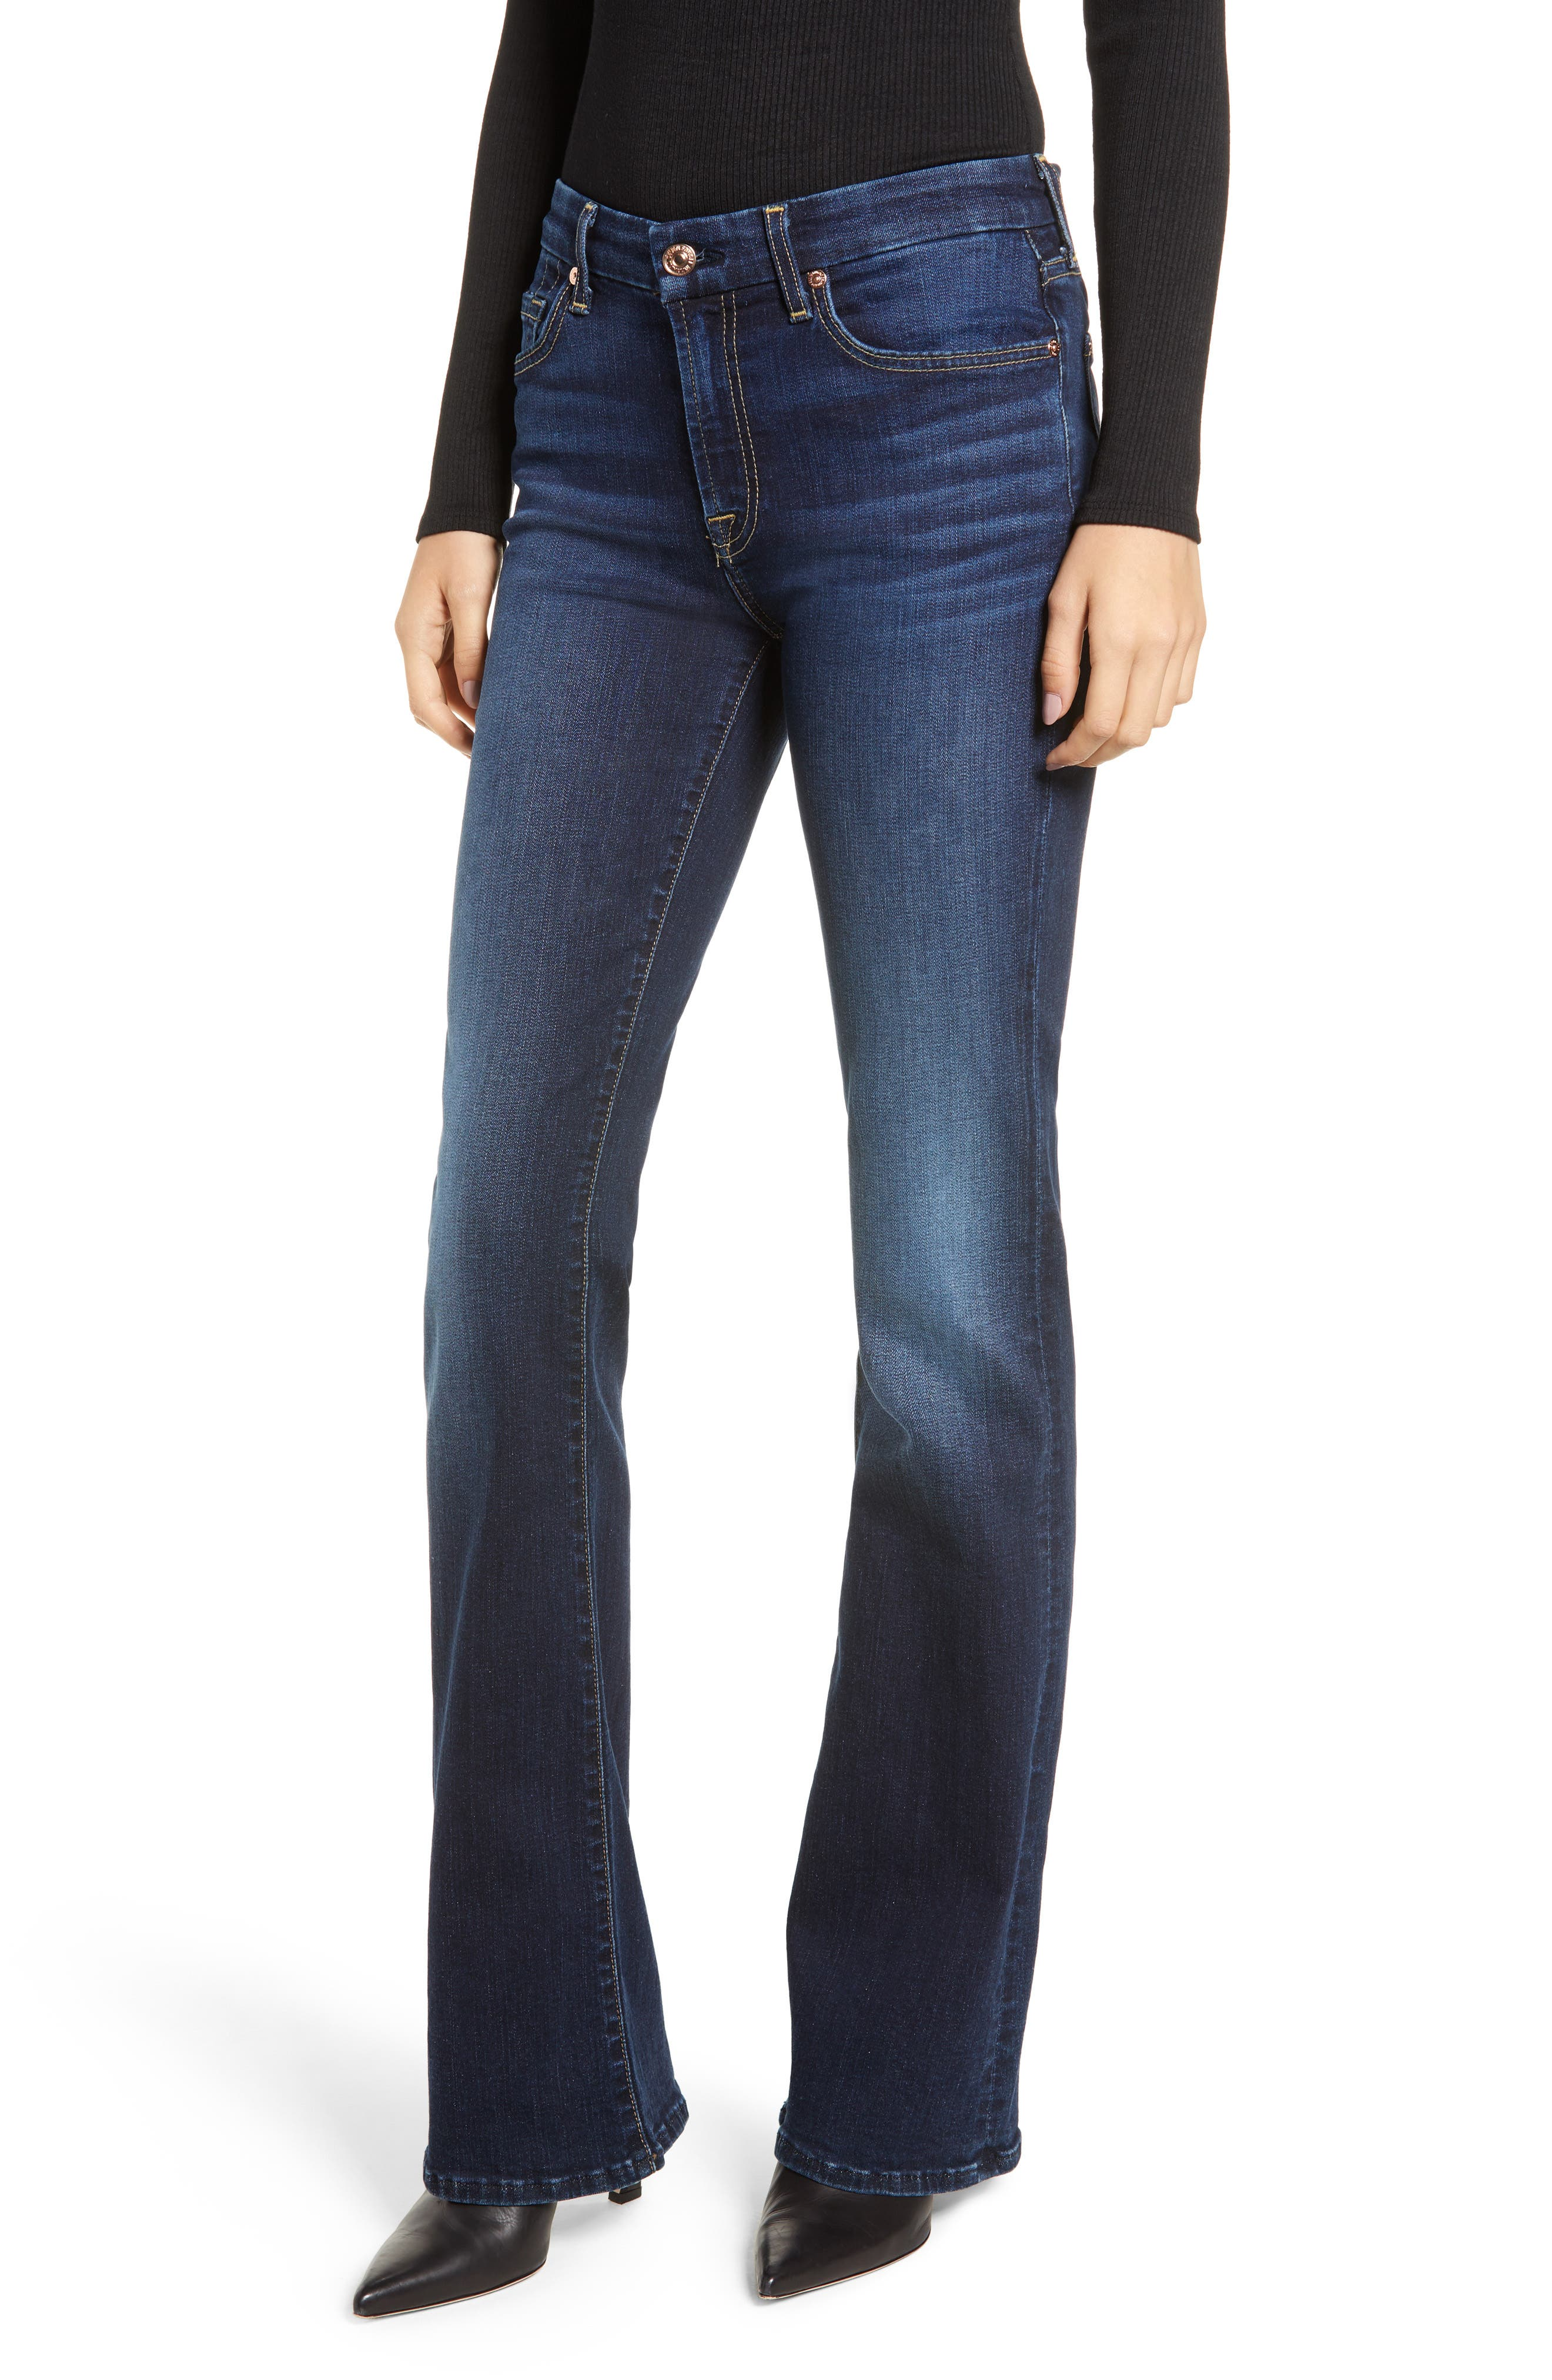 7 FOR ALL MANKIND<SUP>®</SUP>, b(air) Kimmie Bootcut Jeans, Main thumbnail 1, color, AUTHENTIC FATE